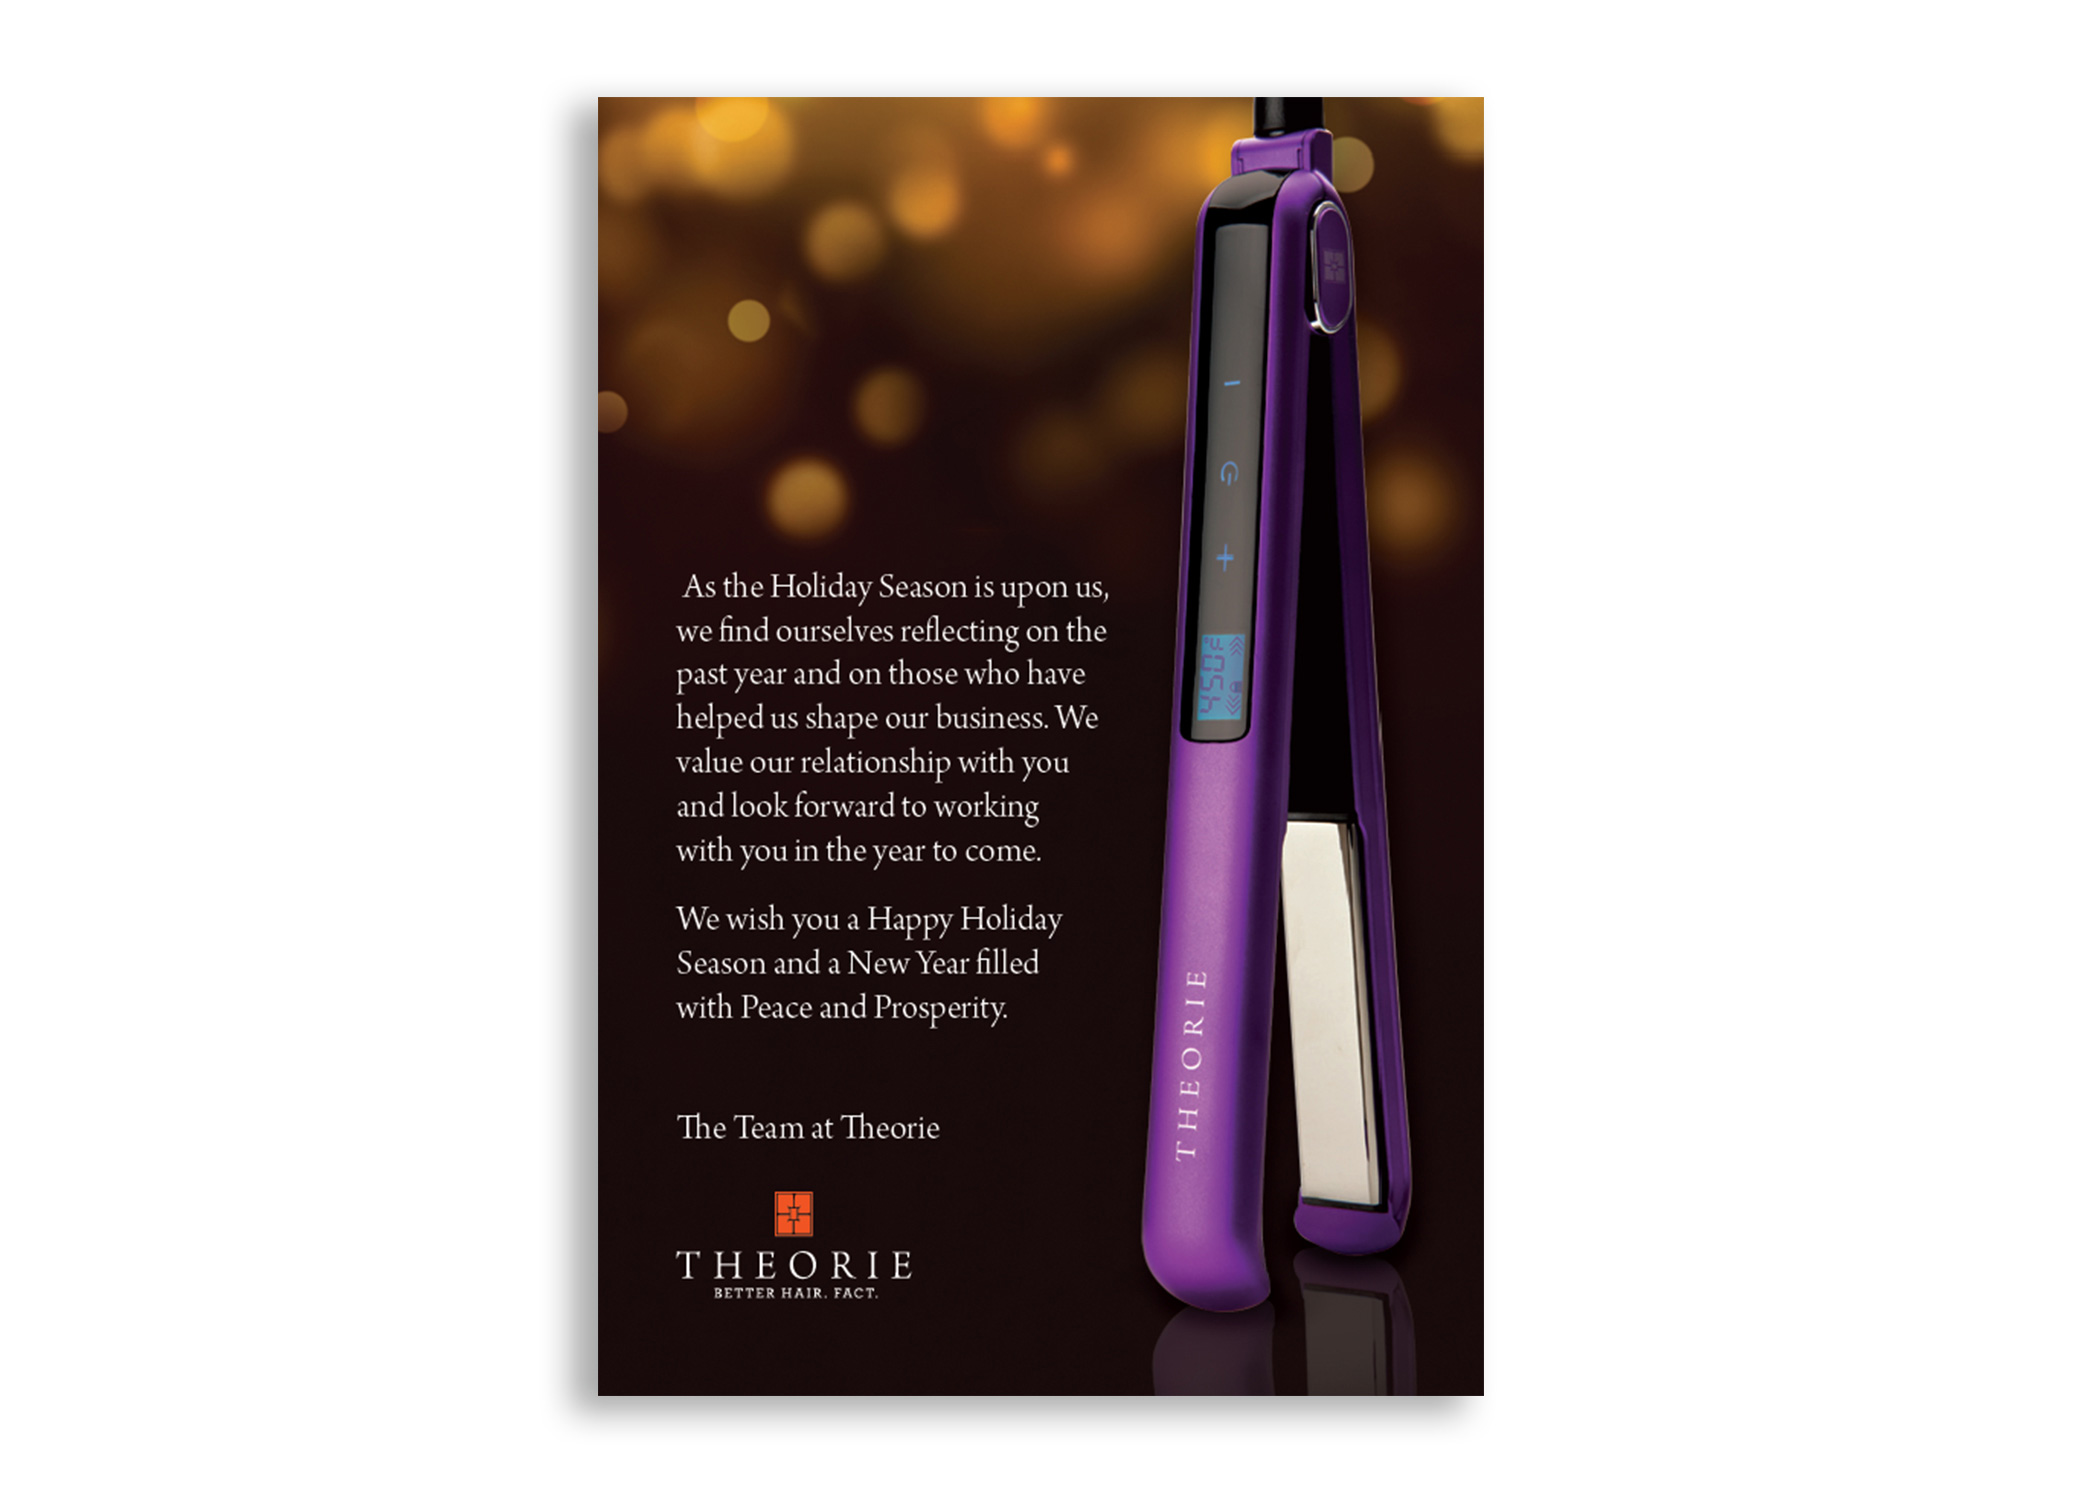 Theorie Save the Date postcard design for sneak preview event showing purple flat iron with chocolate brown case.